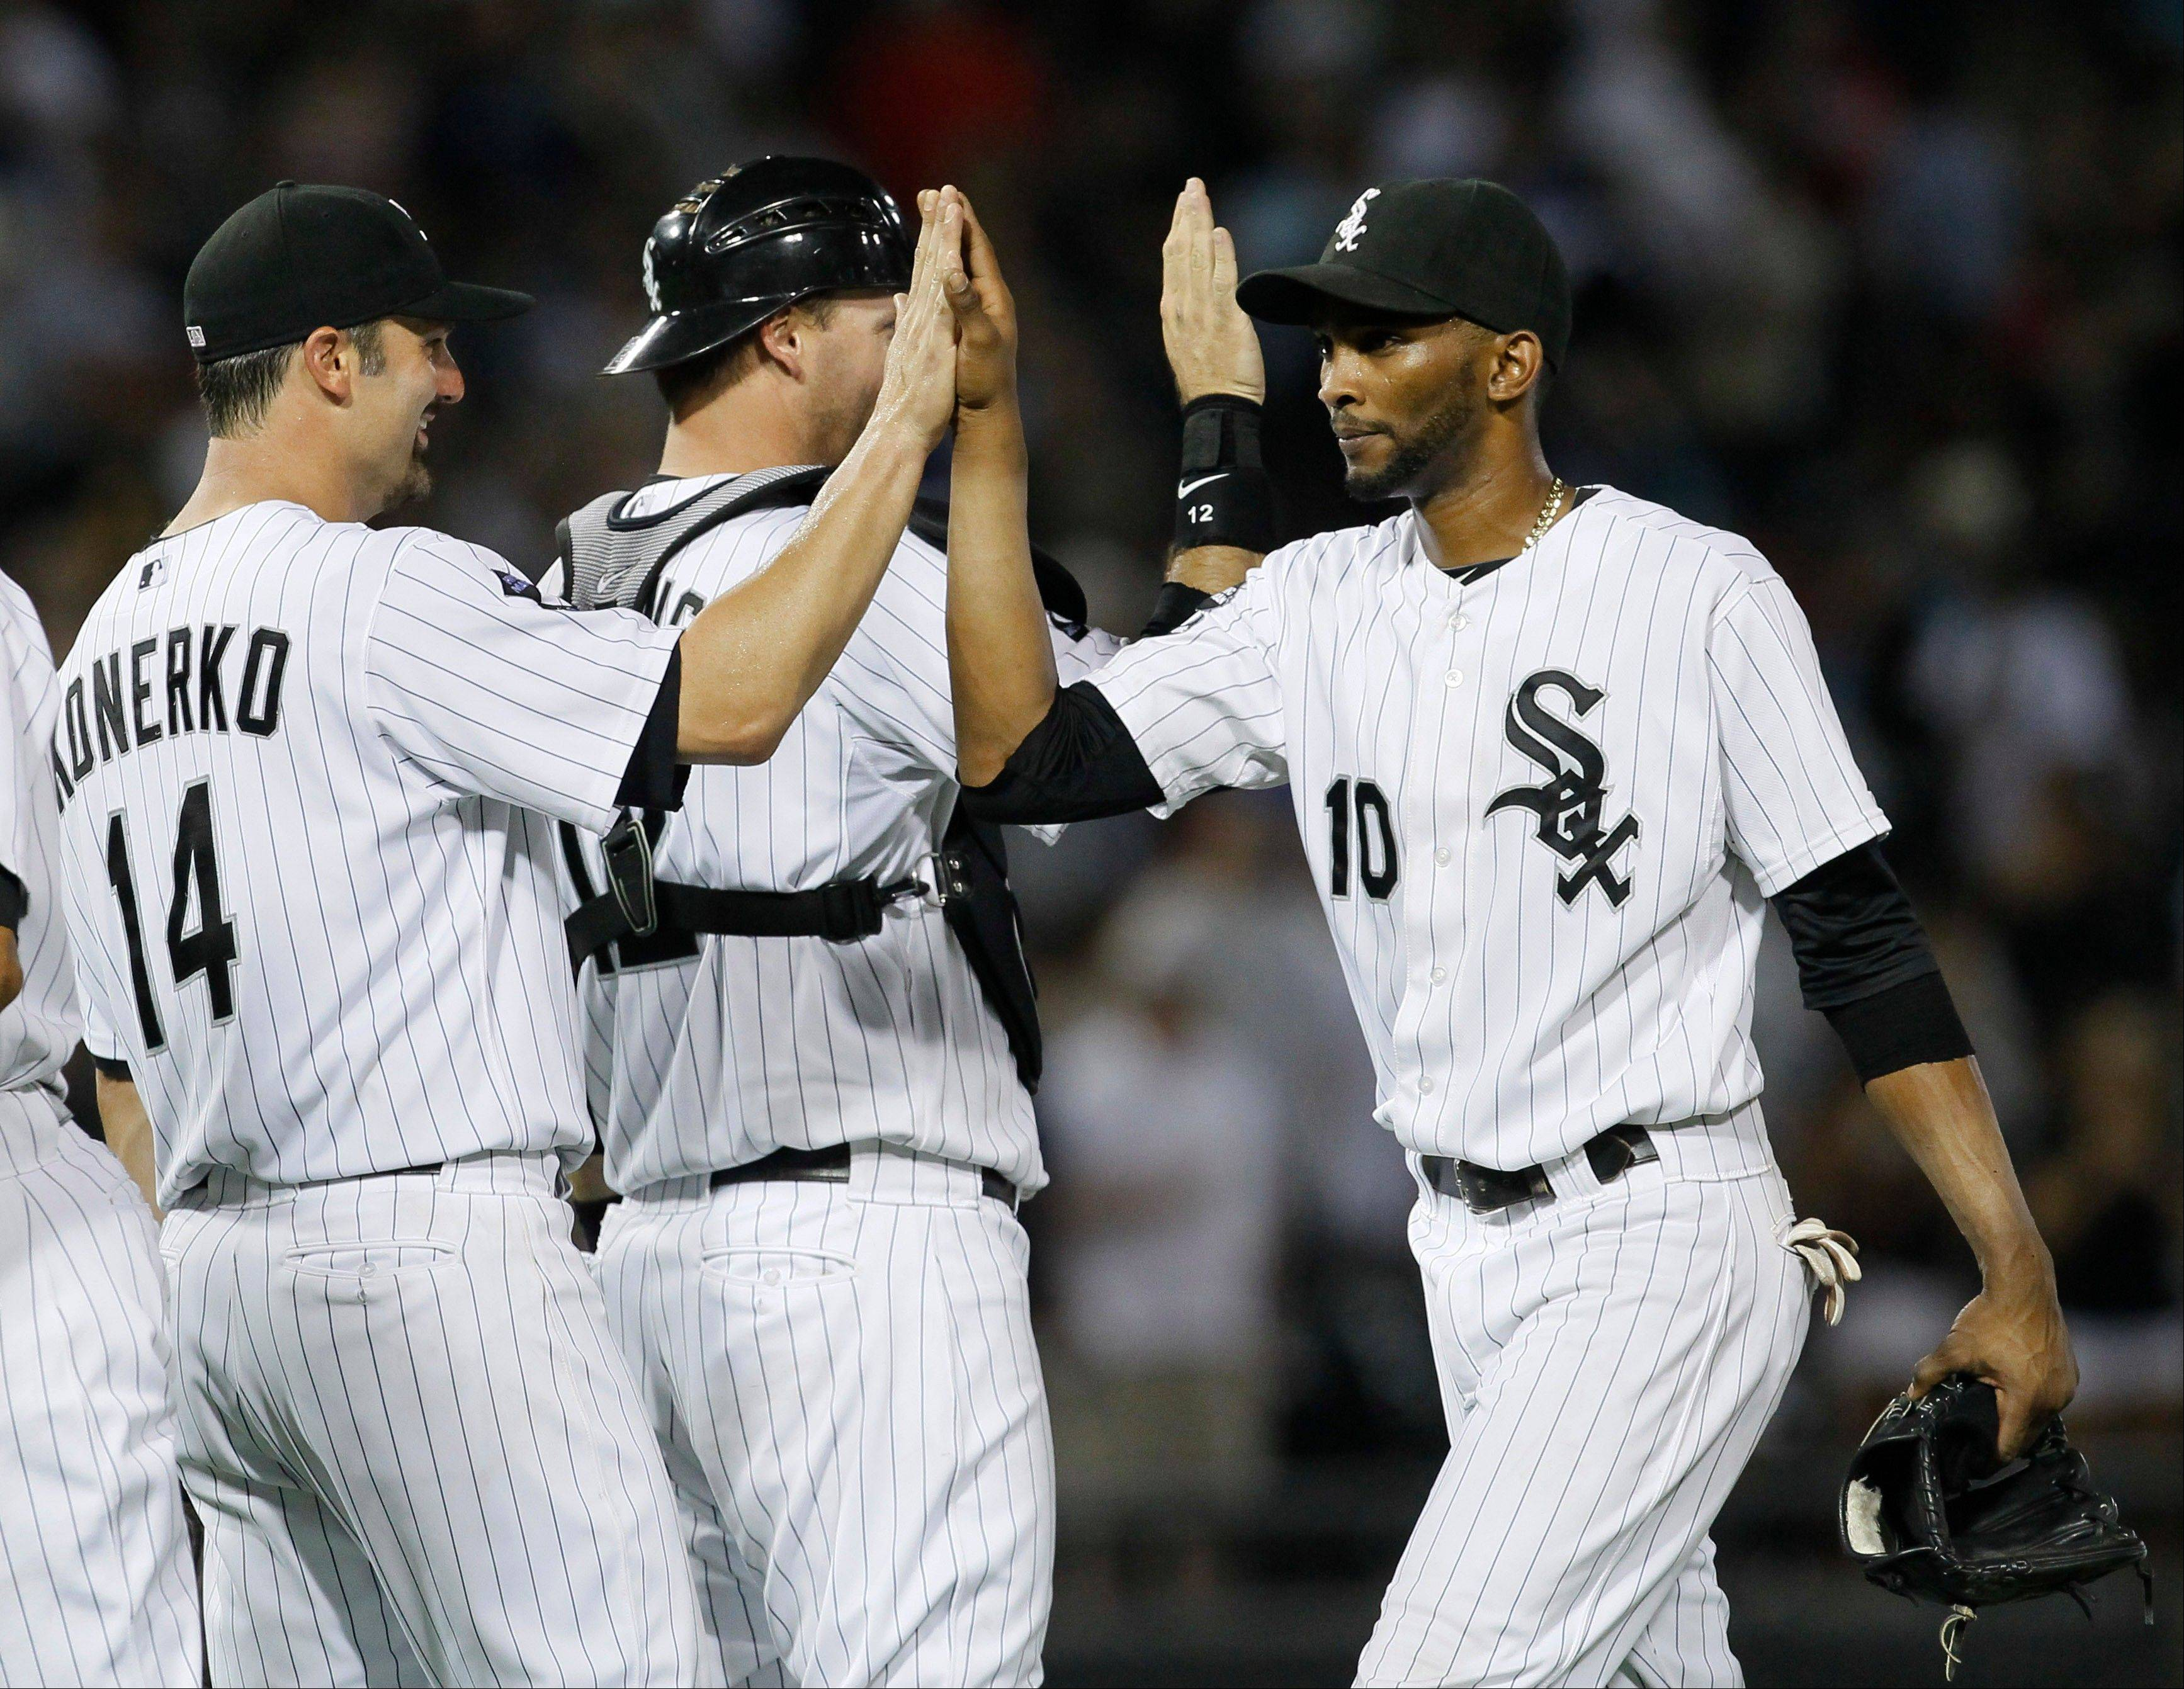 White Sox first baseman Paul Konerko, catcher A.J. Pierzynski and shortstop Alexei Ramirez celebrate Monday night's victory. Konerko got the offense rolling with a 3-run homer in the first inning